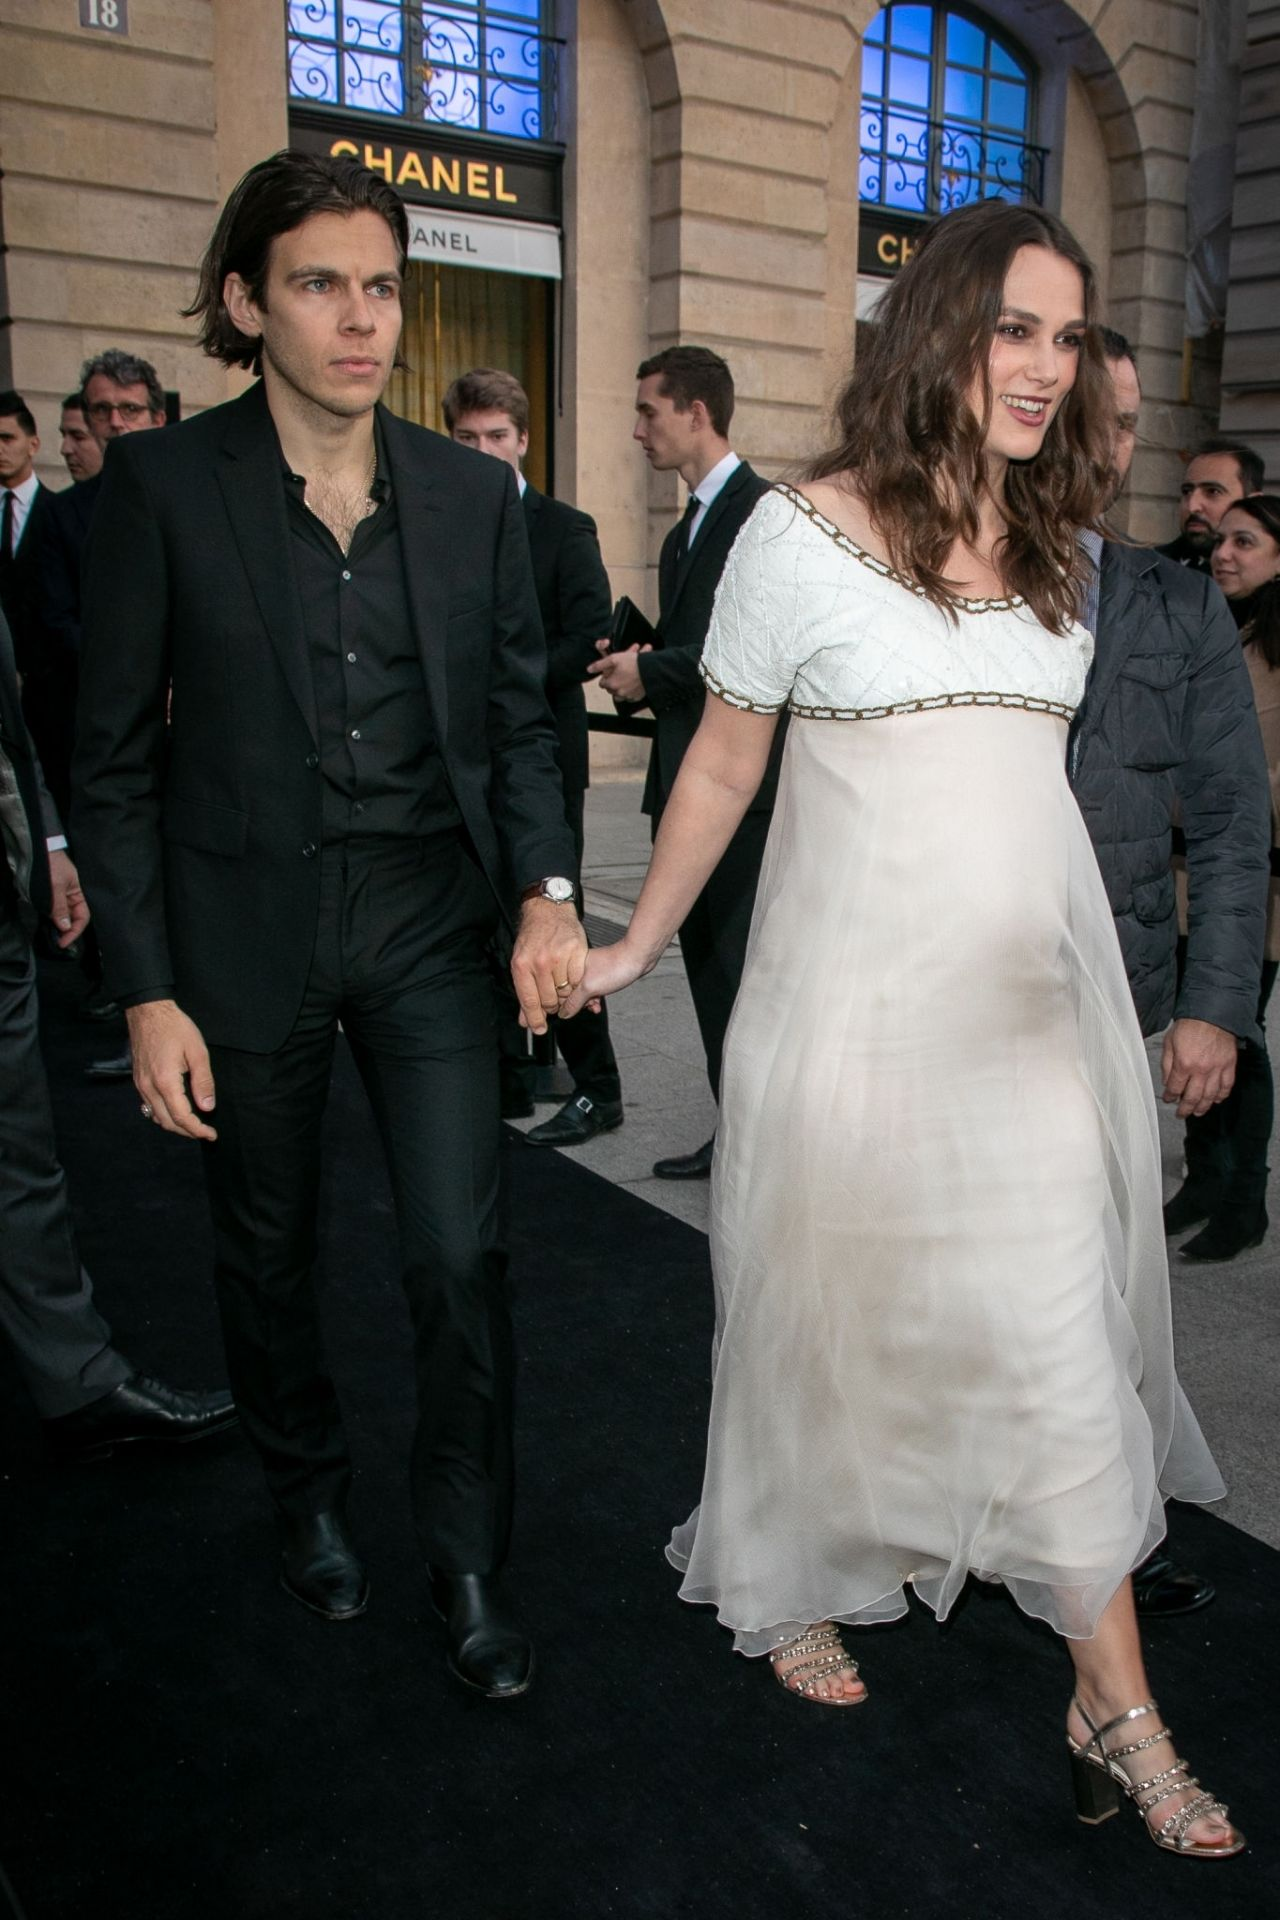 Keira Knightley Chanel J12 Cocktail Party In Paris 05 02